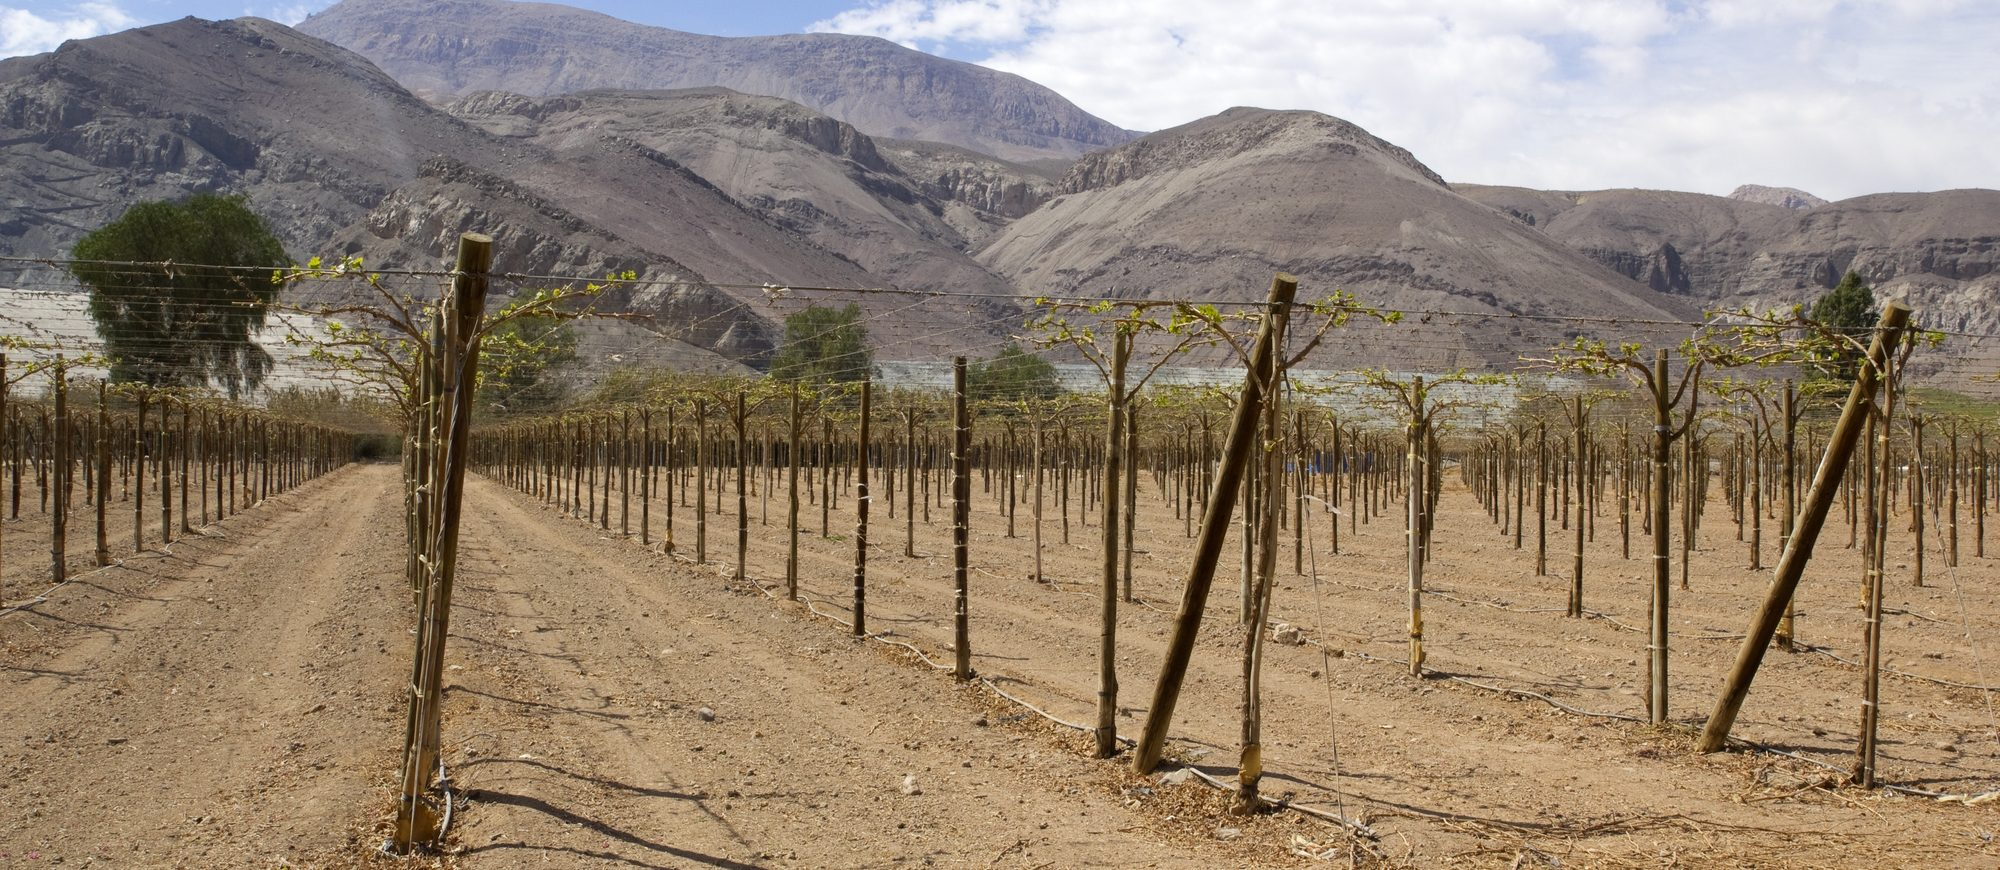 Vineyard cultivation for fruit and wine, in the inhospitable mountains of the Andes. Chile